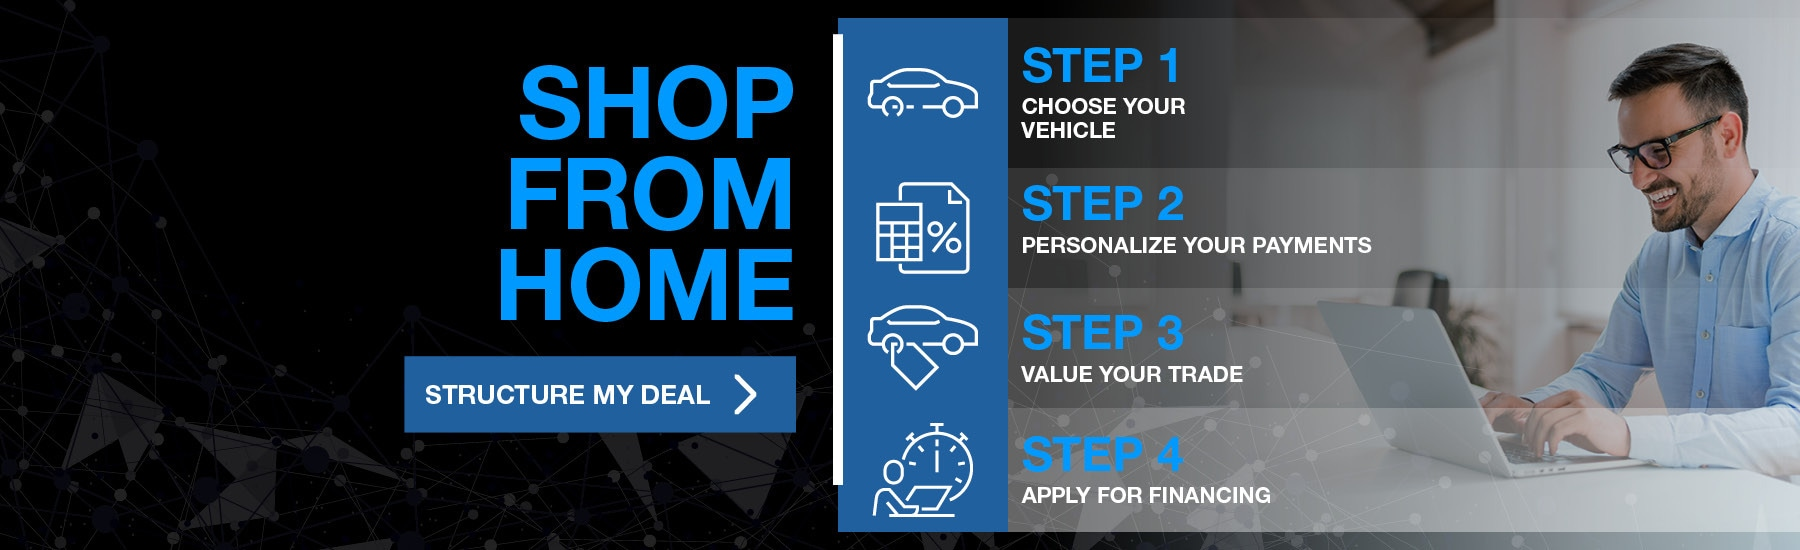 Buy a Car Online in Dieppe, New Brunswick- Subaru of Moncton